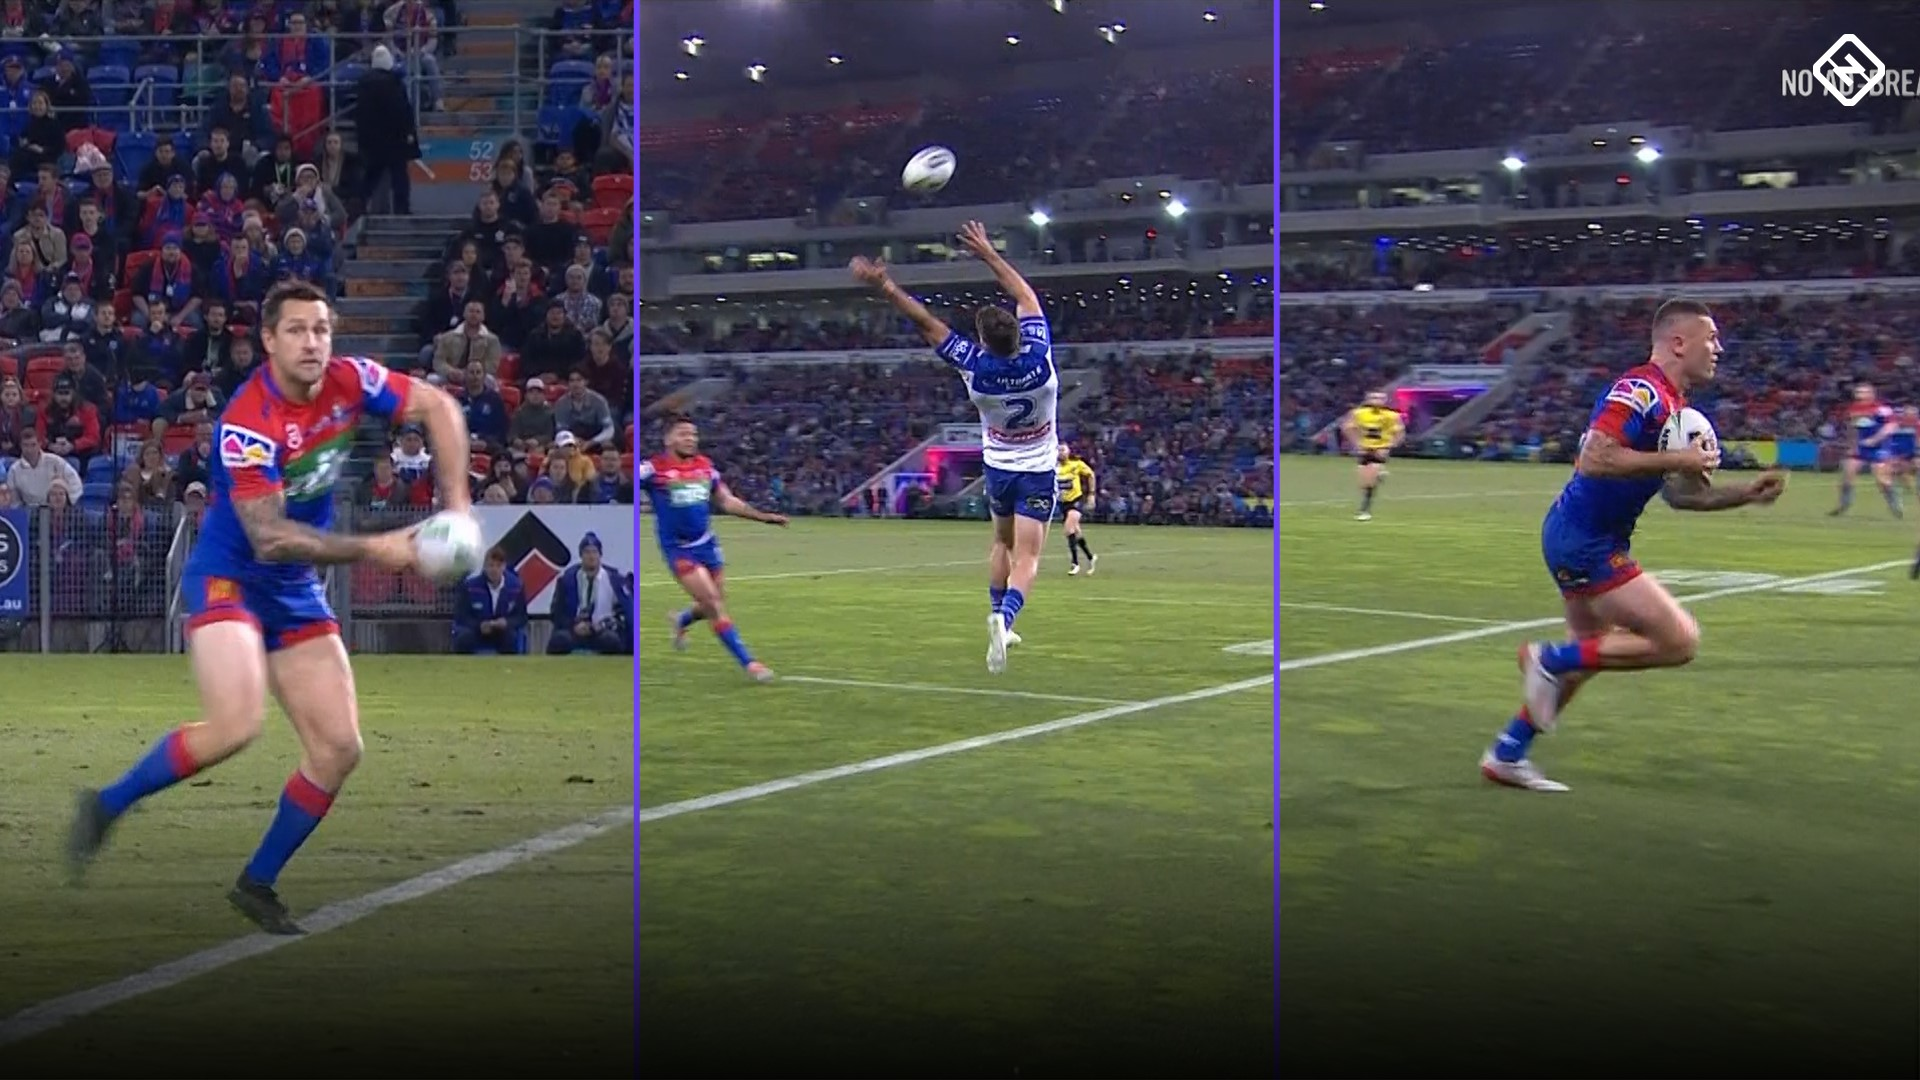 Knights v Bulldogs: Mitchell Pearce cut-out pass sees Shaun Kenny-Dowall open scoring